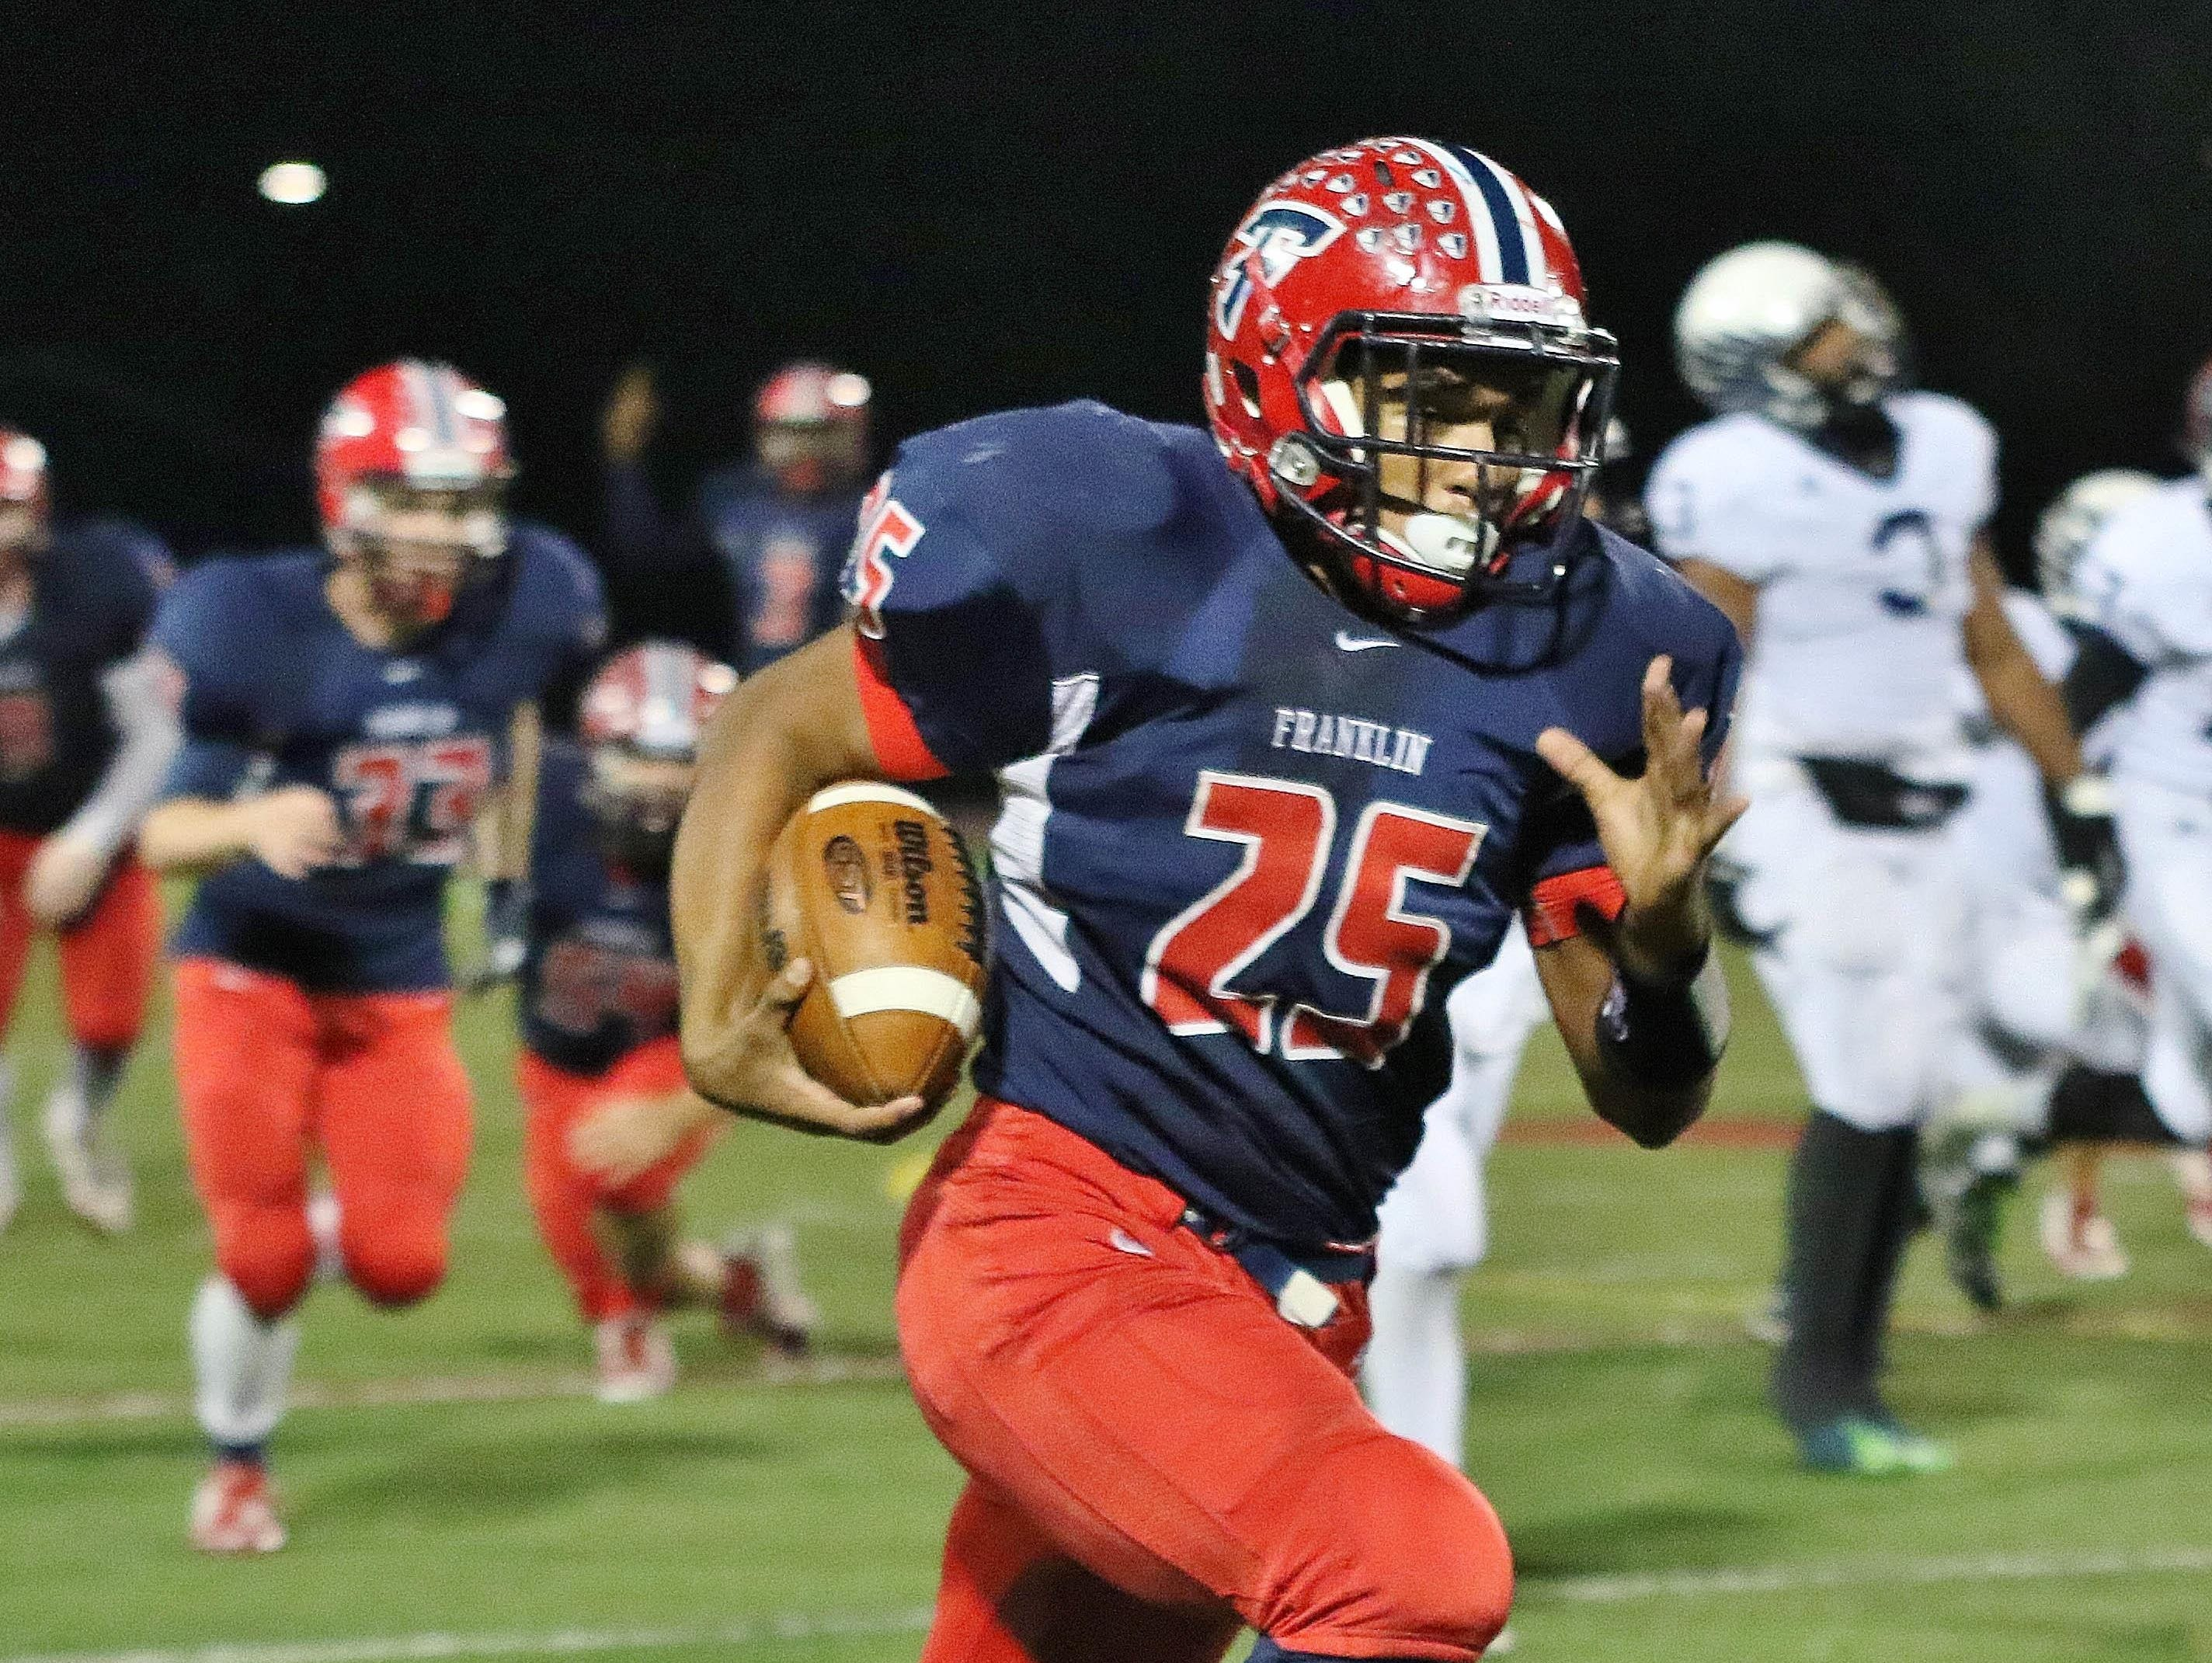 Franklin's Jacob Clark had a huge night running the ball during the Patriots' 33-30 victory over Farmington.